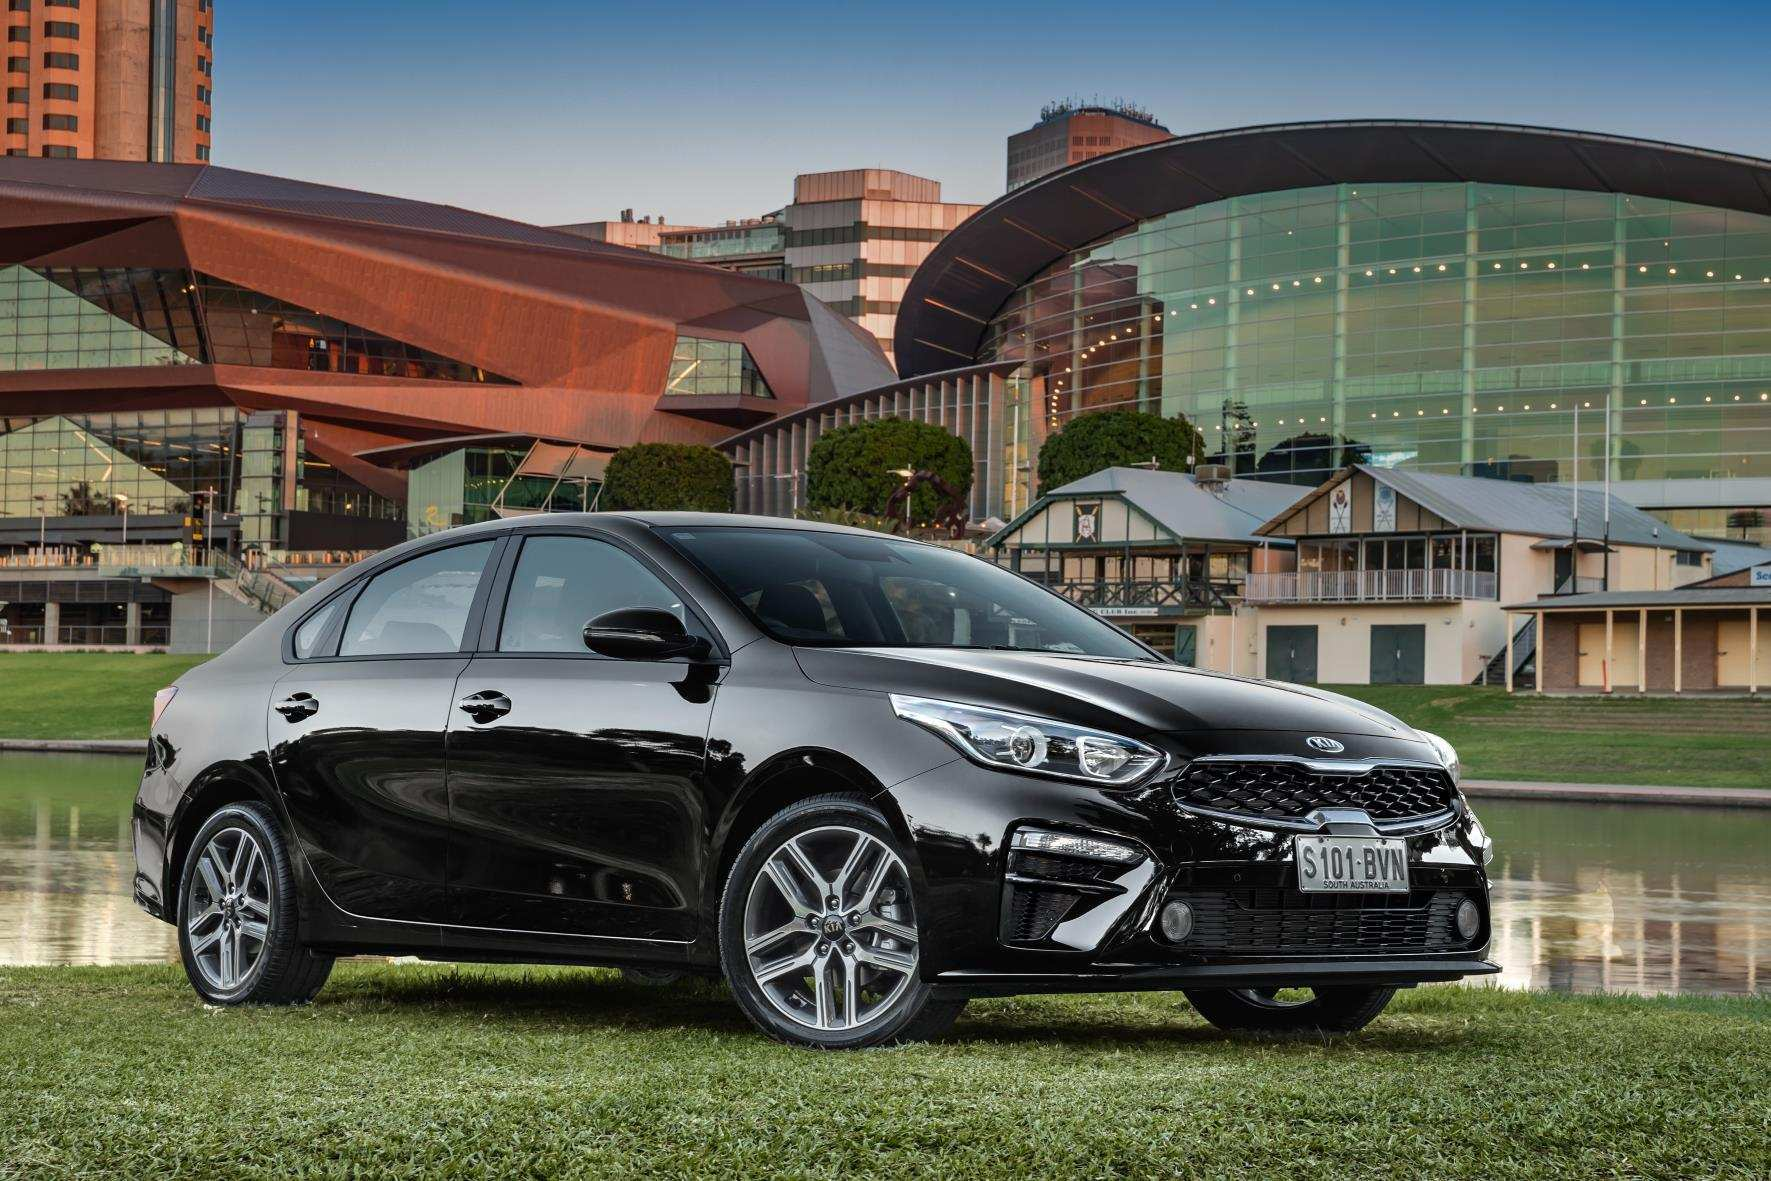 60 Gallery of Kia Cerato 2020 Black Pricing with Kia Cerato 2020 Black